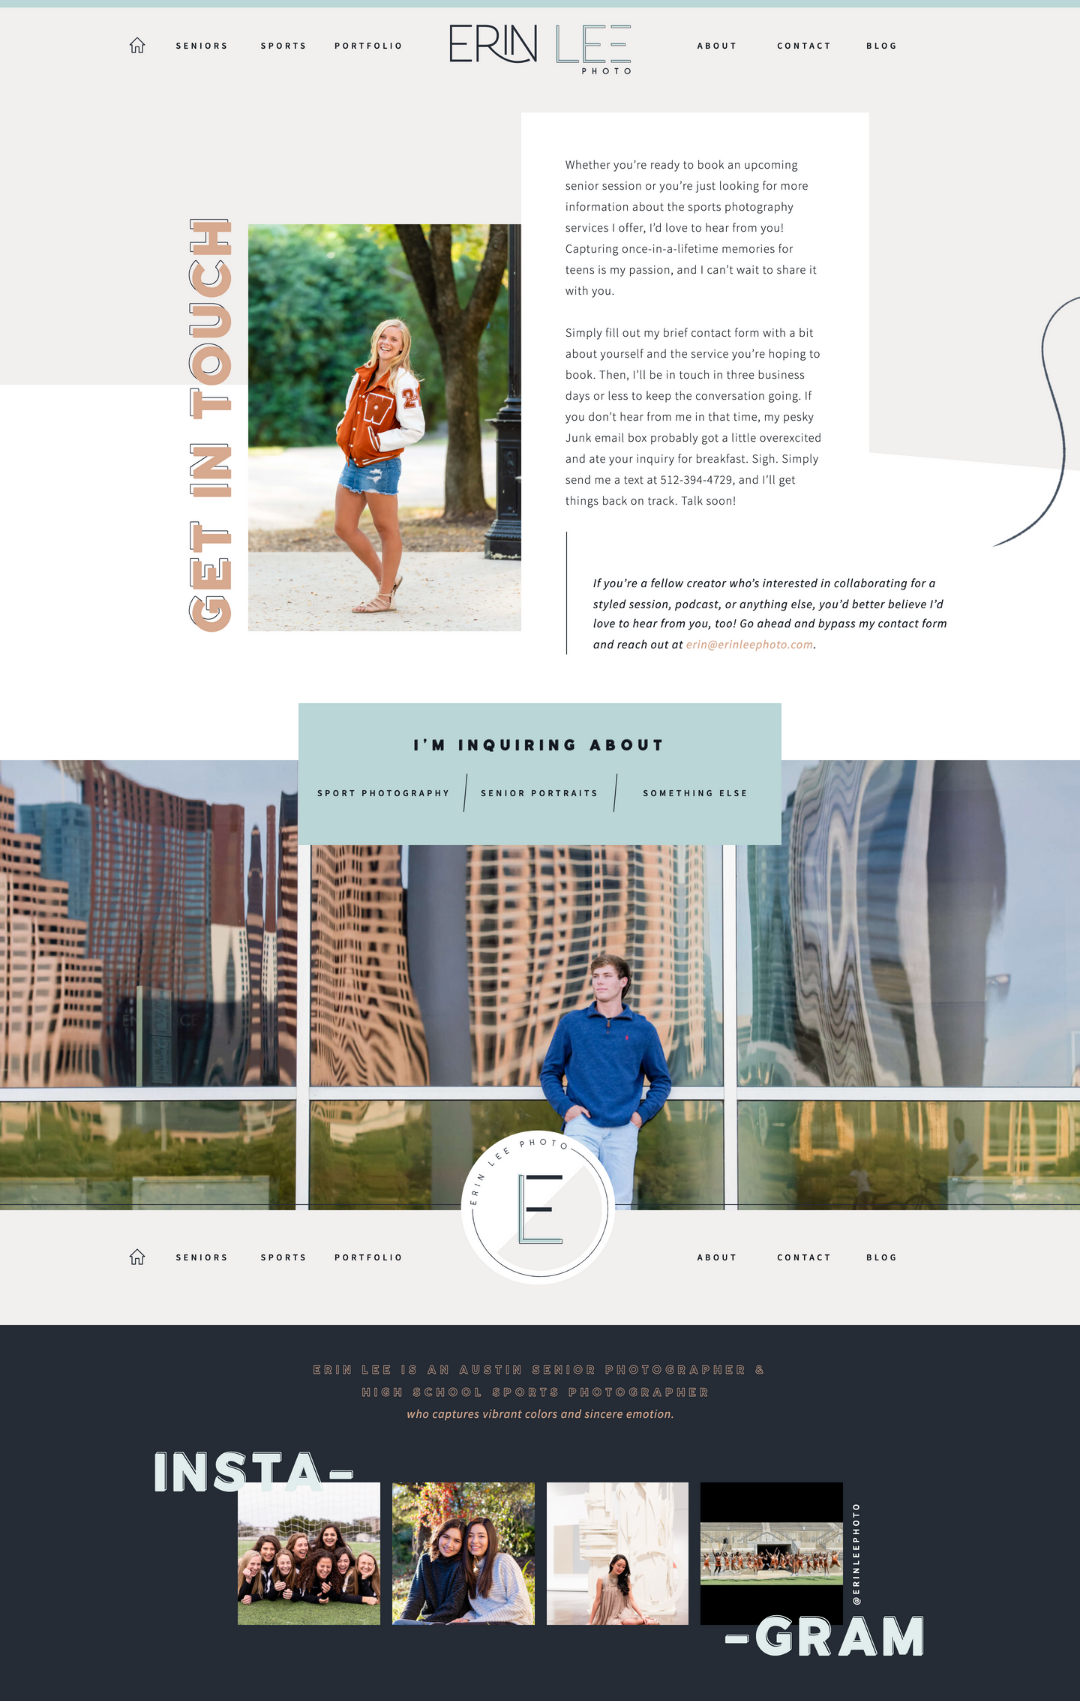 Preview of Erin Lee Photography's contact page